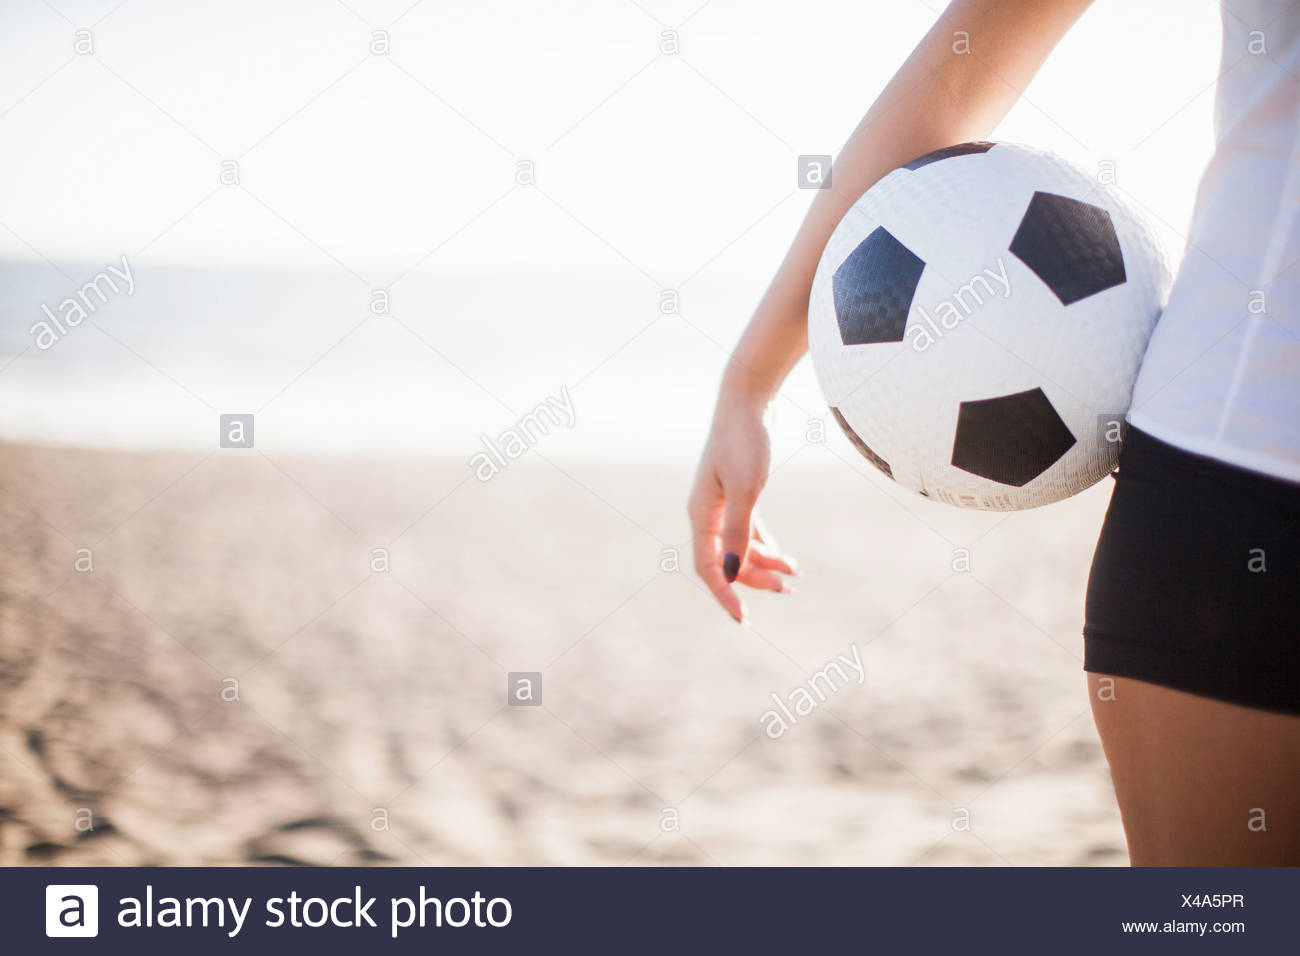 Young woman holding football - Stock Image